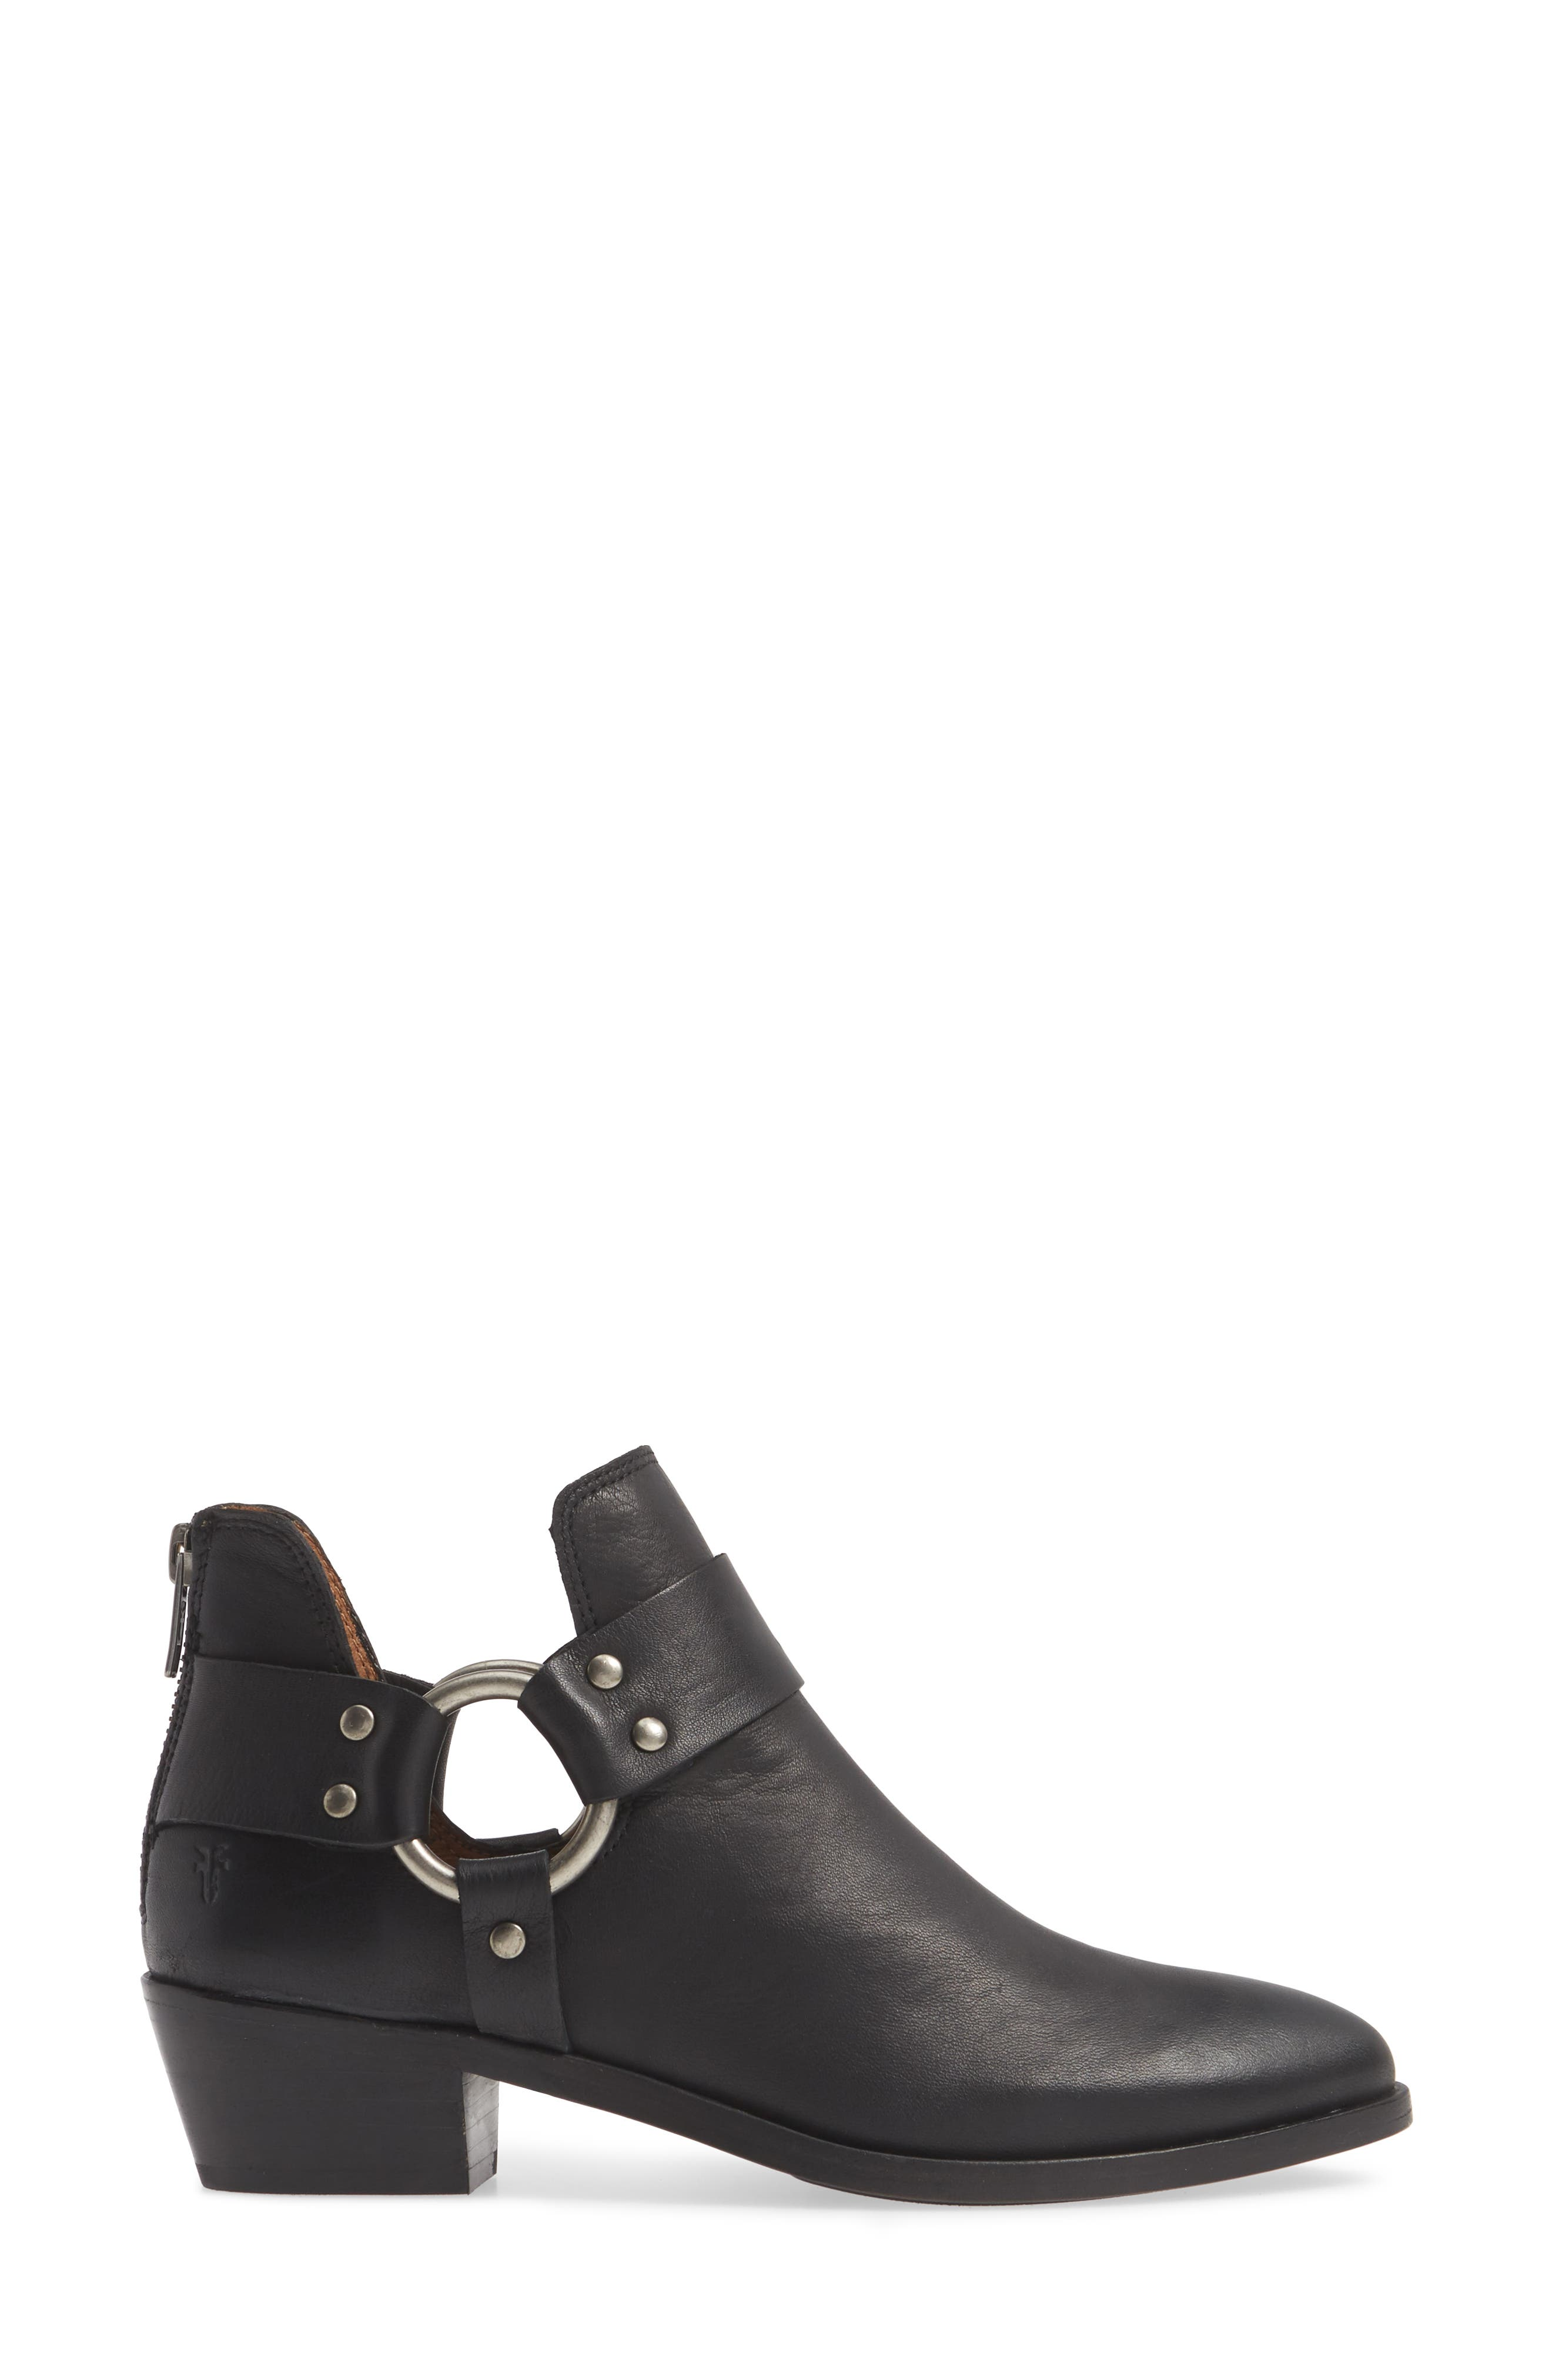 FRYE, Ray Low Harness Bootie, Alternate thumbnail 3, color, BLACK